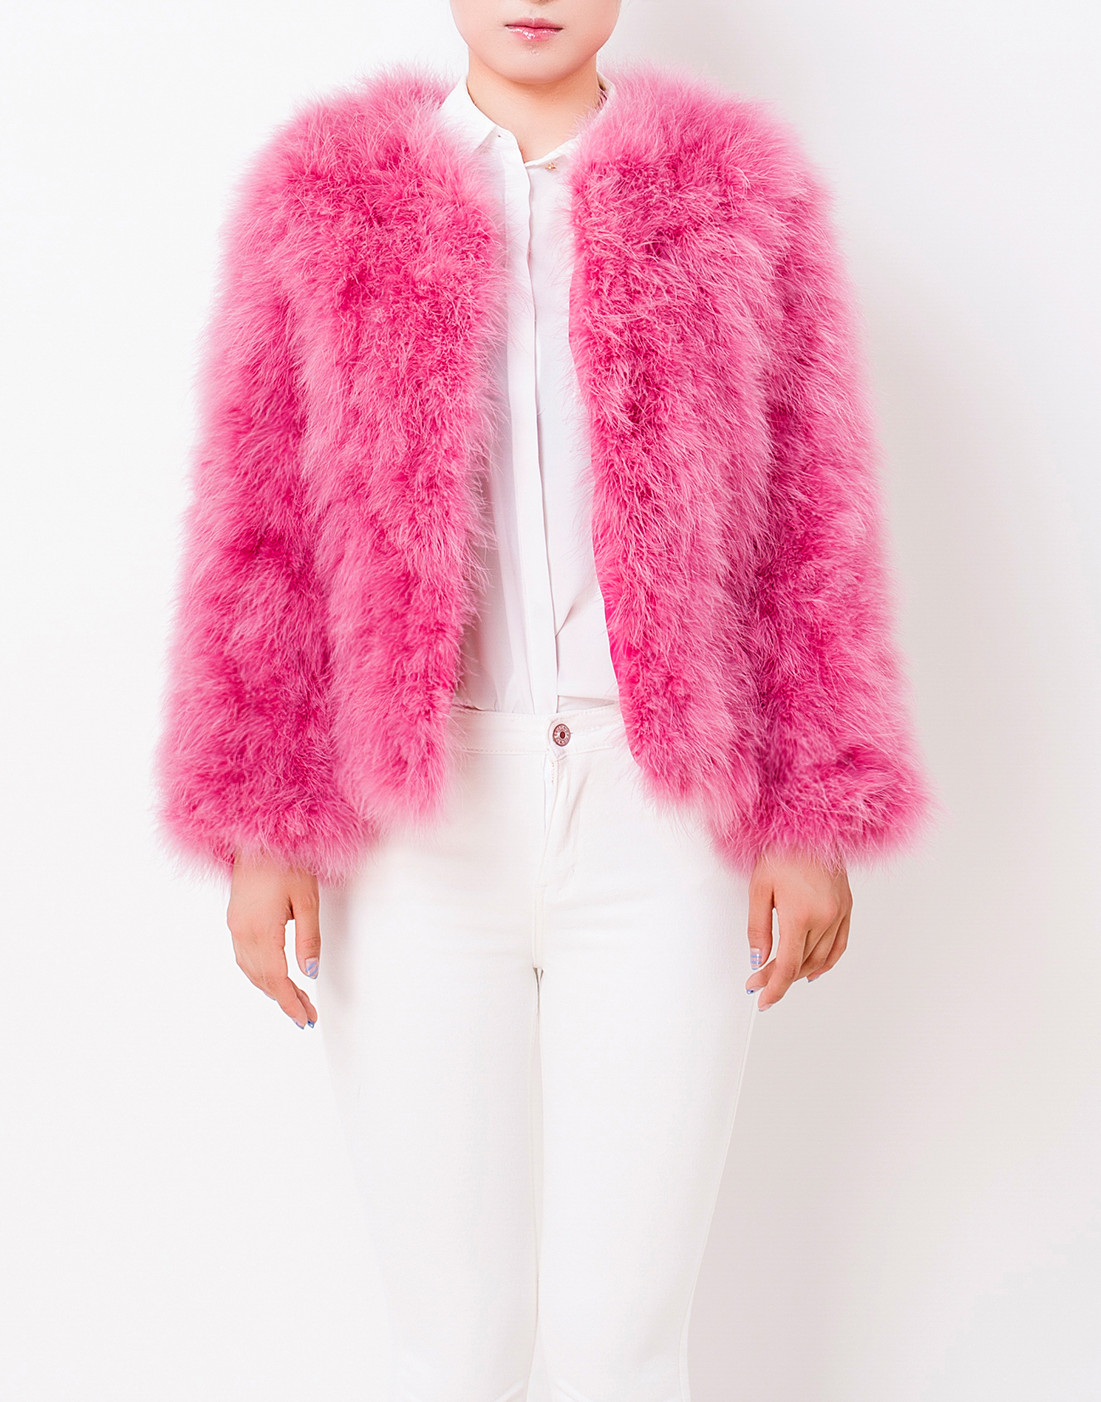 Fluffy Fur Fever Jacket Raspberry Pink - Pellobello